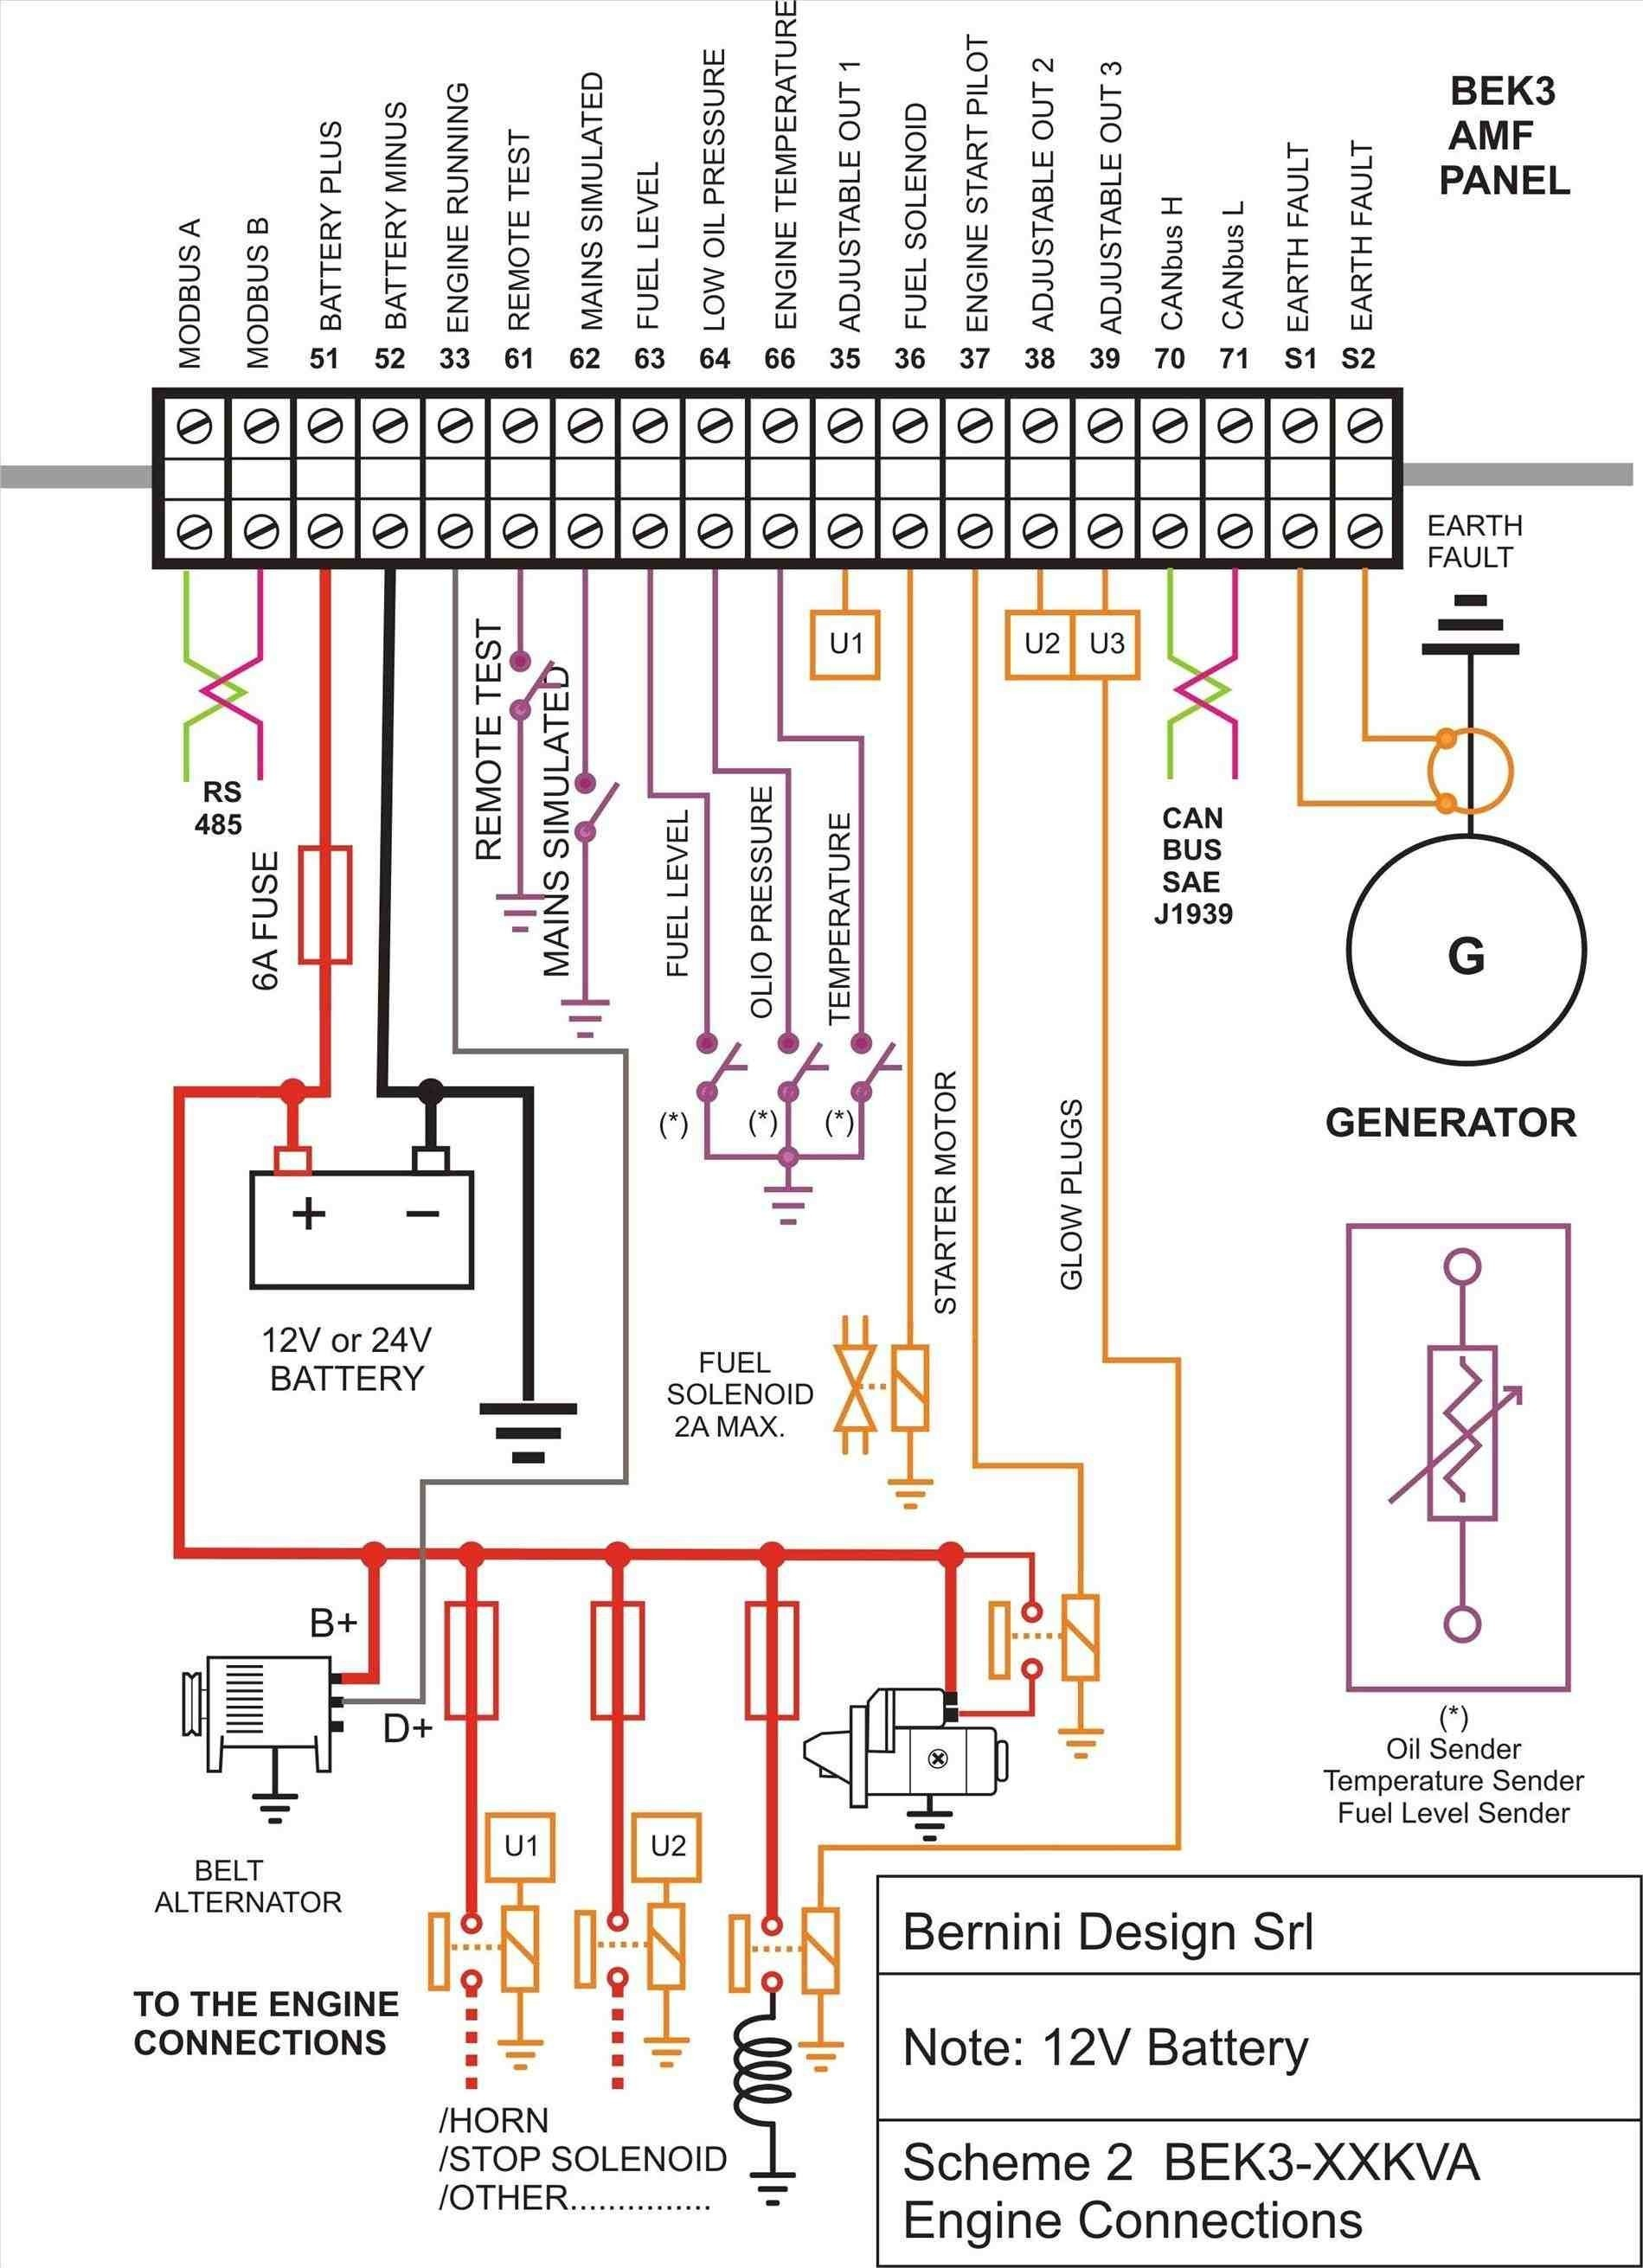 electrical wiring diagram best of wiring diagram image rh mainetreasurechest com Parallel Circuit Diagram Electronic Circuit Diagrams